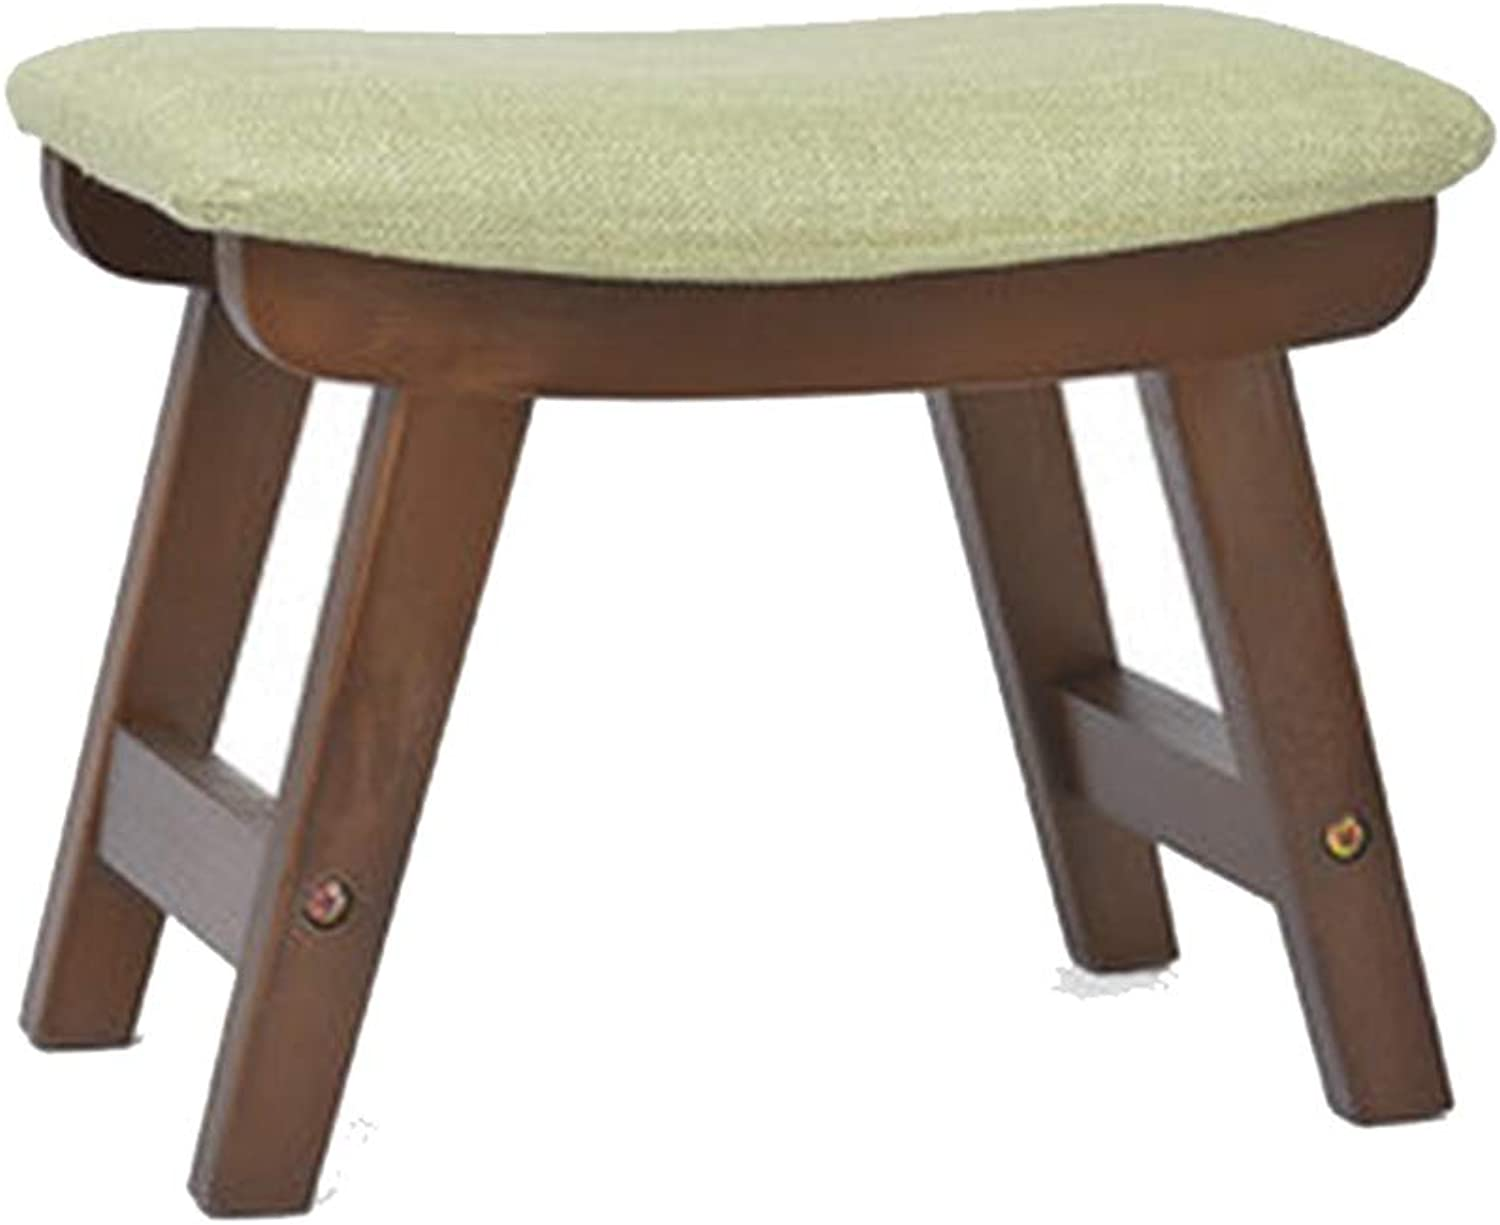 Stool Coffee Table Stool Solid Wood Fabric Stool Cloth Cover Removable Kitchen Bedroom Living Room,E,38.5  24.5  29CM